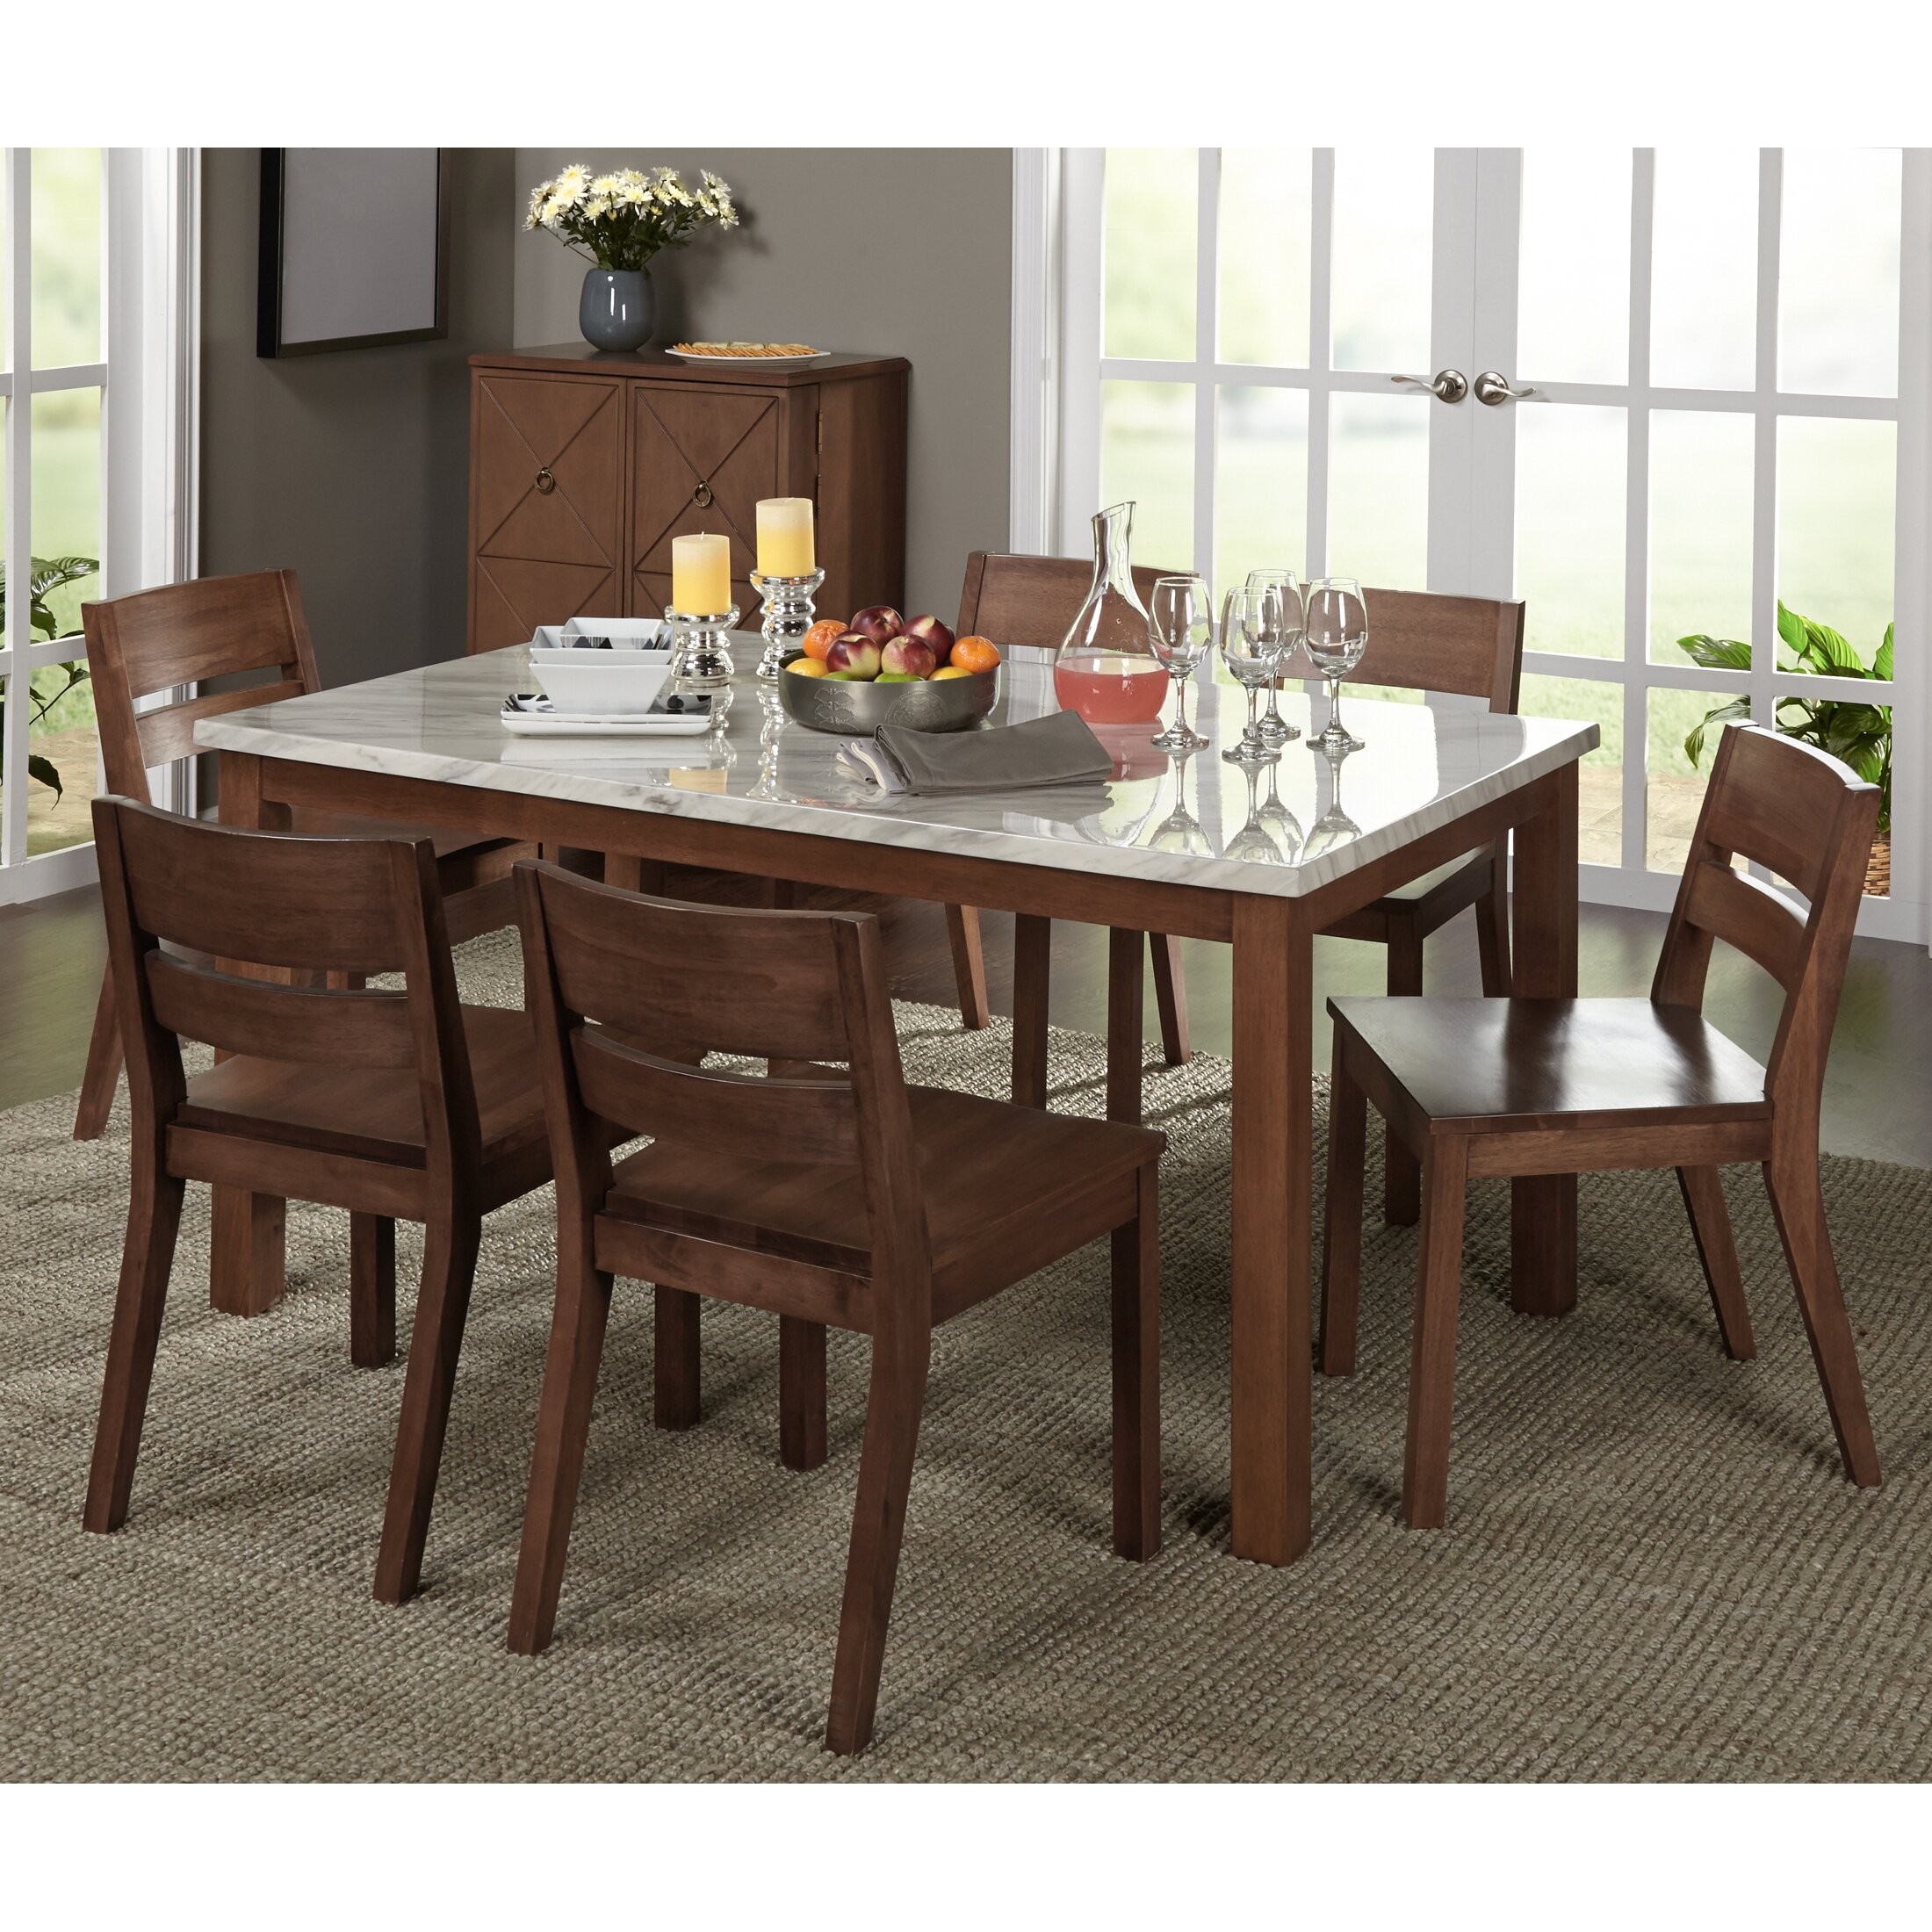 Brayden studio losey 7 piece dining set reviews wayfair for 2 piece dining room set